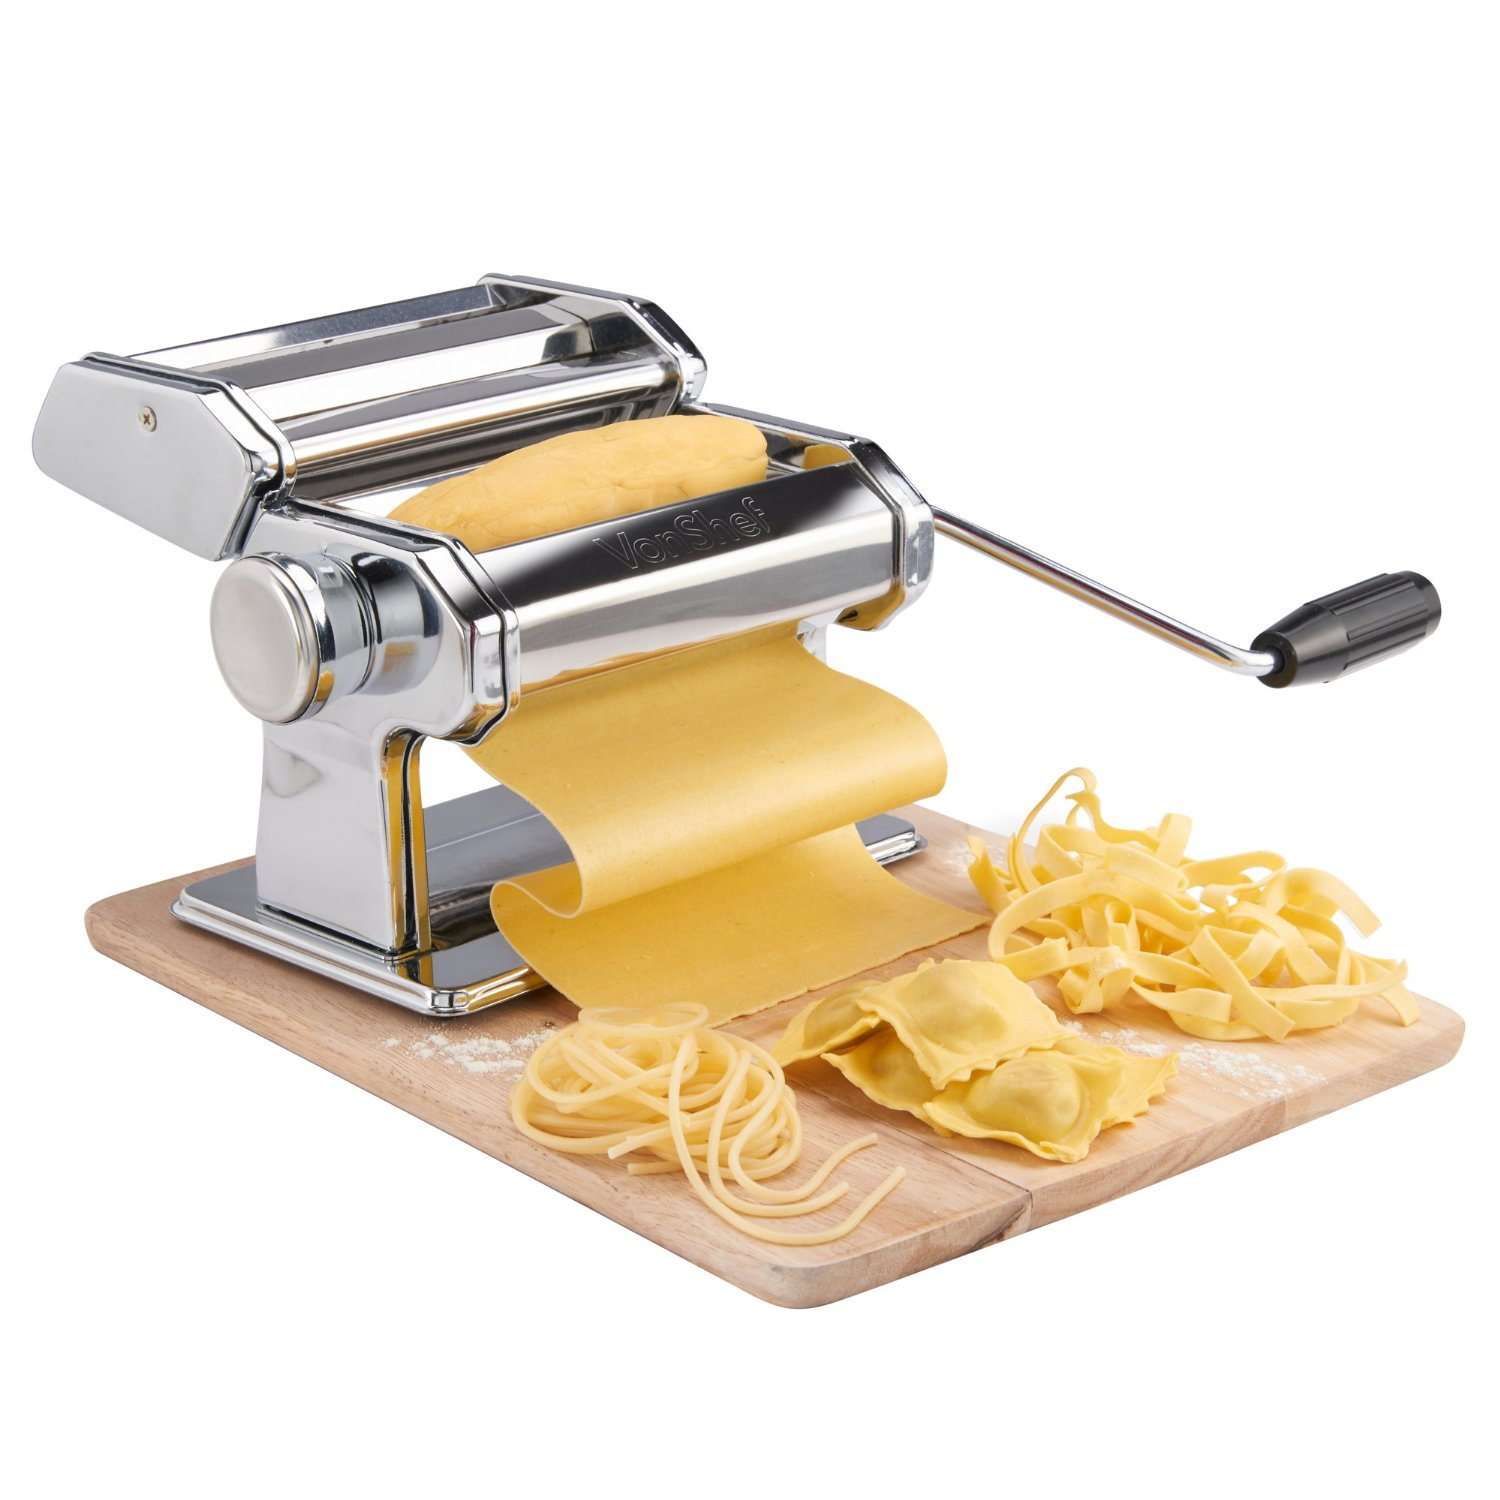 8 Best Pasta Makers In 2017 Reviews Of Pasta Machines